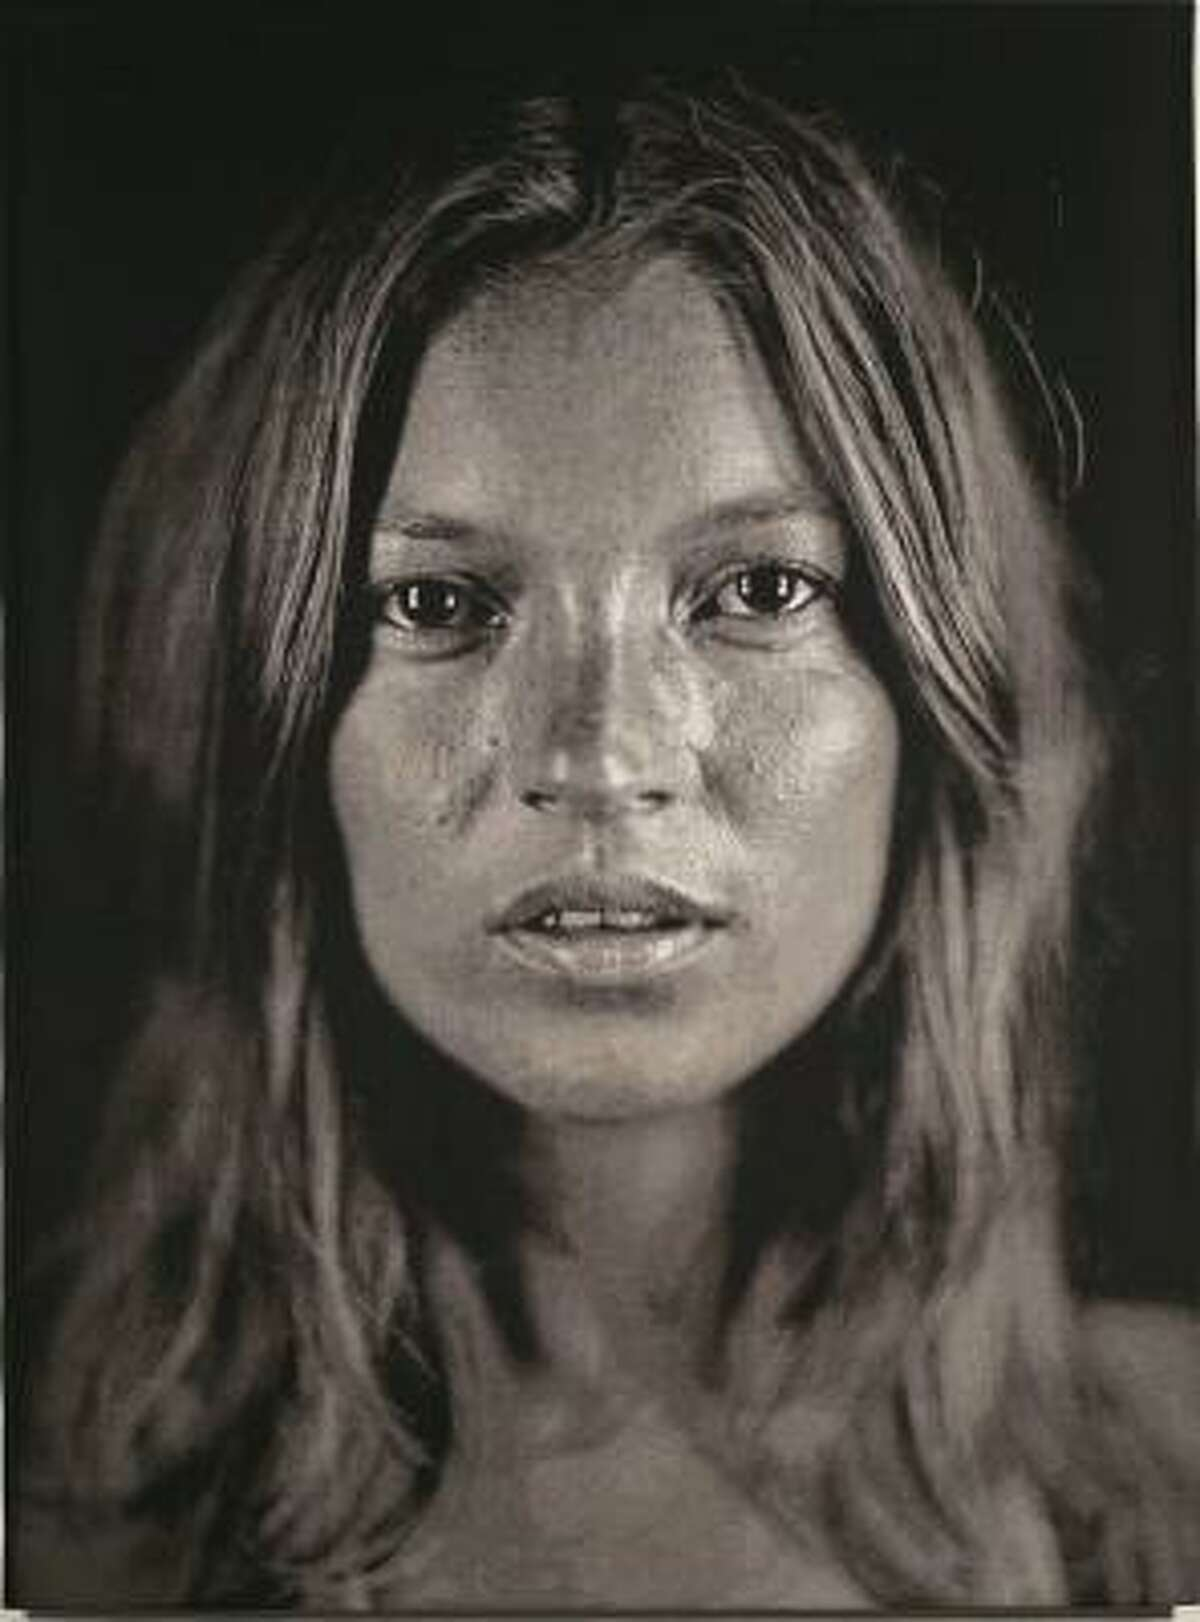 Chuck Close's revealing photo of model Kate Moss was printed using digital weaving techniques to create a jacquard tapestry made up of 17,800 threads.